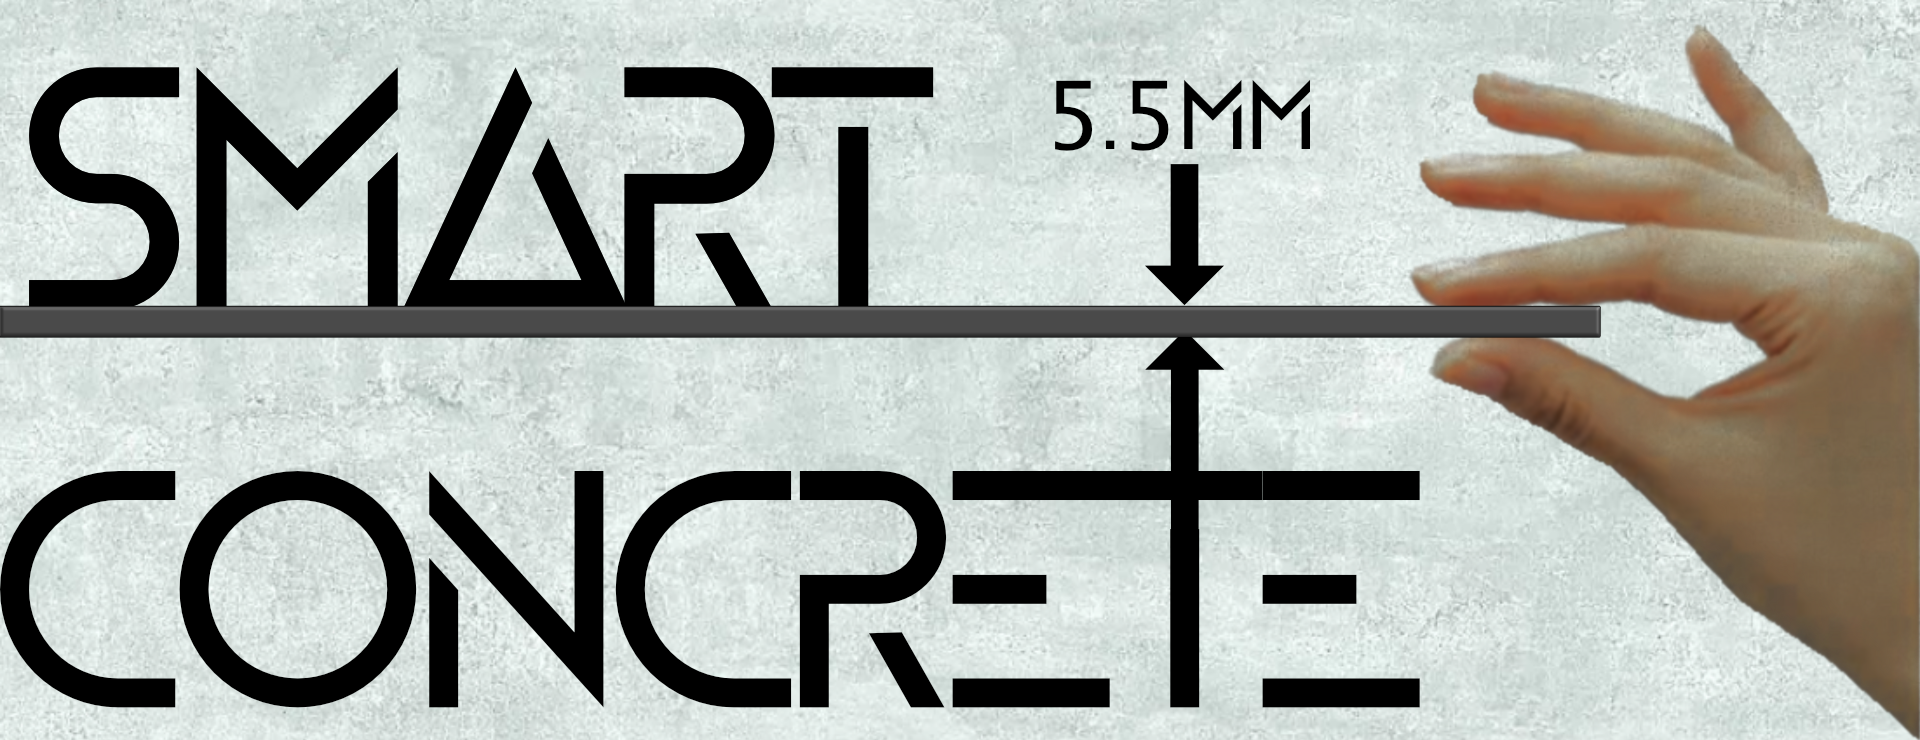 Smart Concrete5.5mm.png